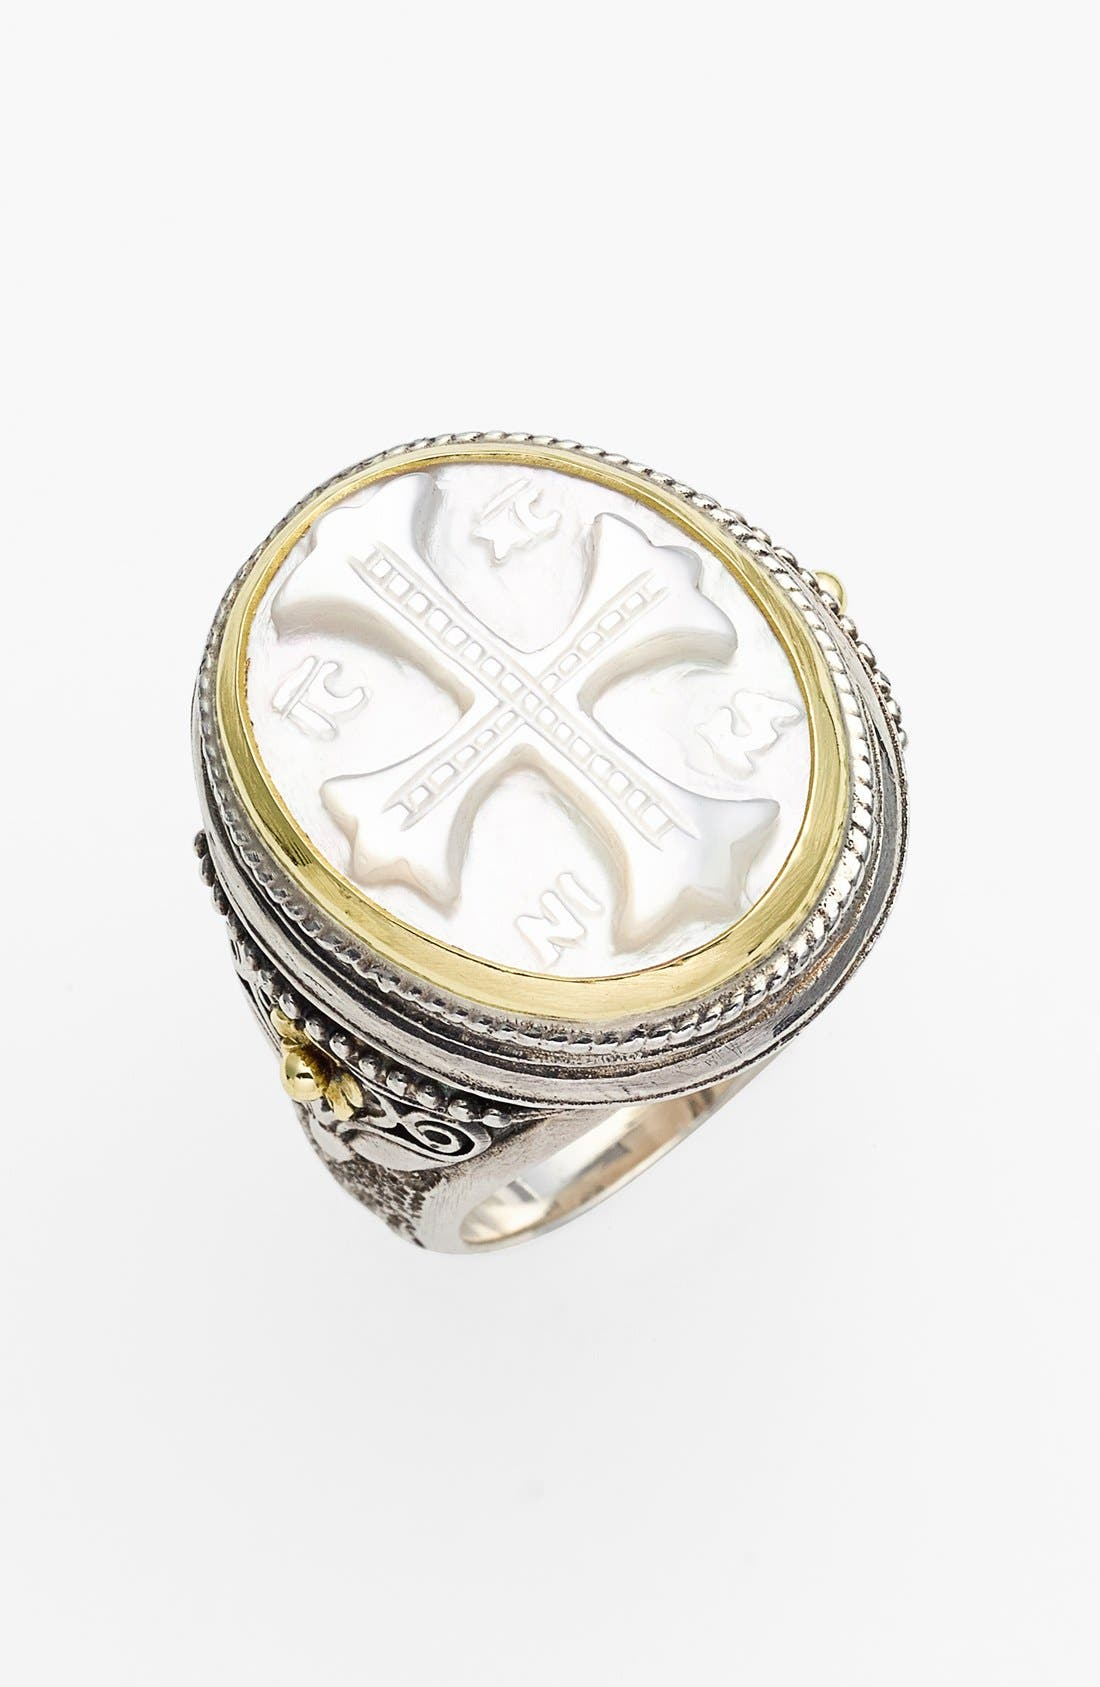 'Athena' Mother of Pearl Signet Ring,                         Main,                         color, Silver/ Gold